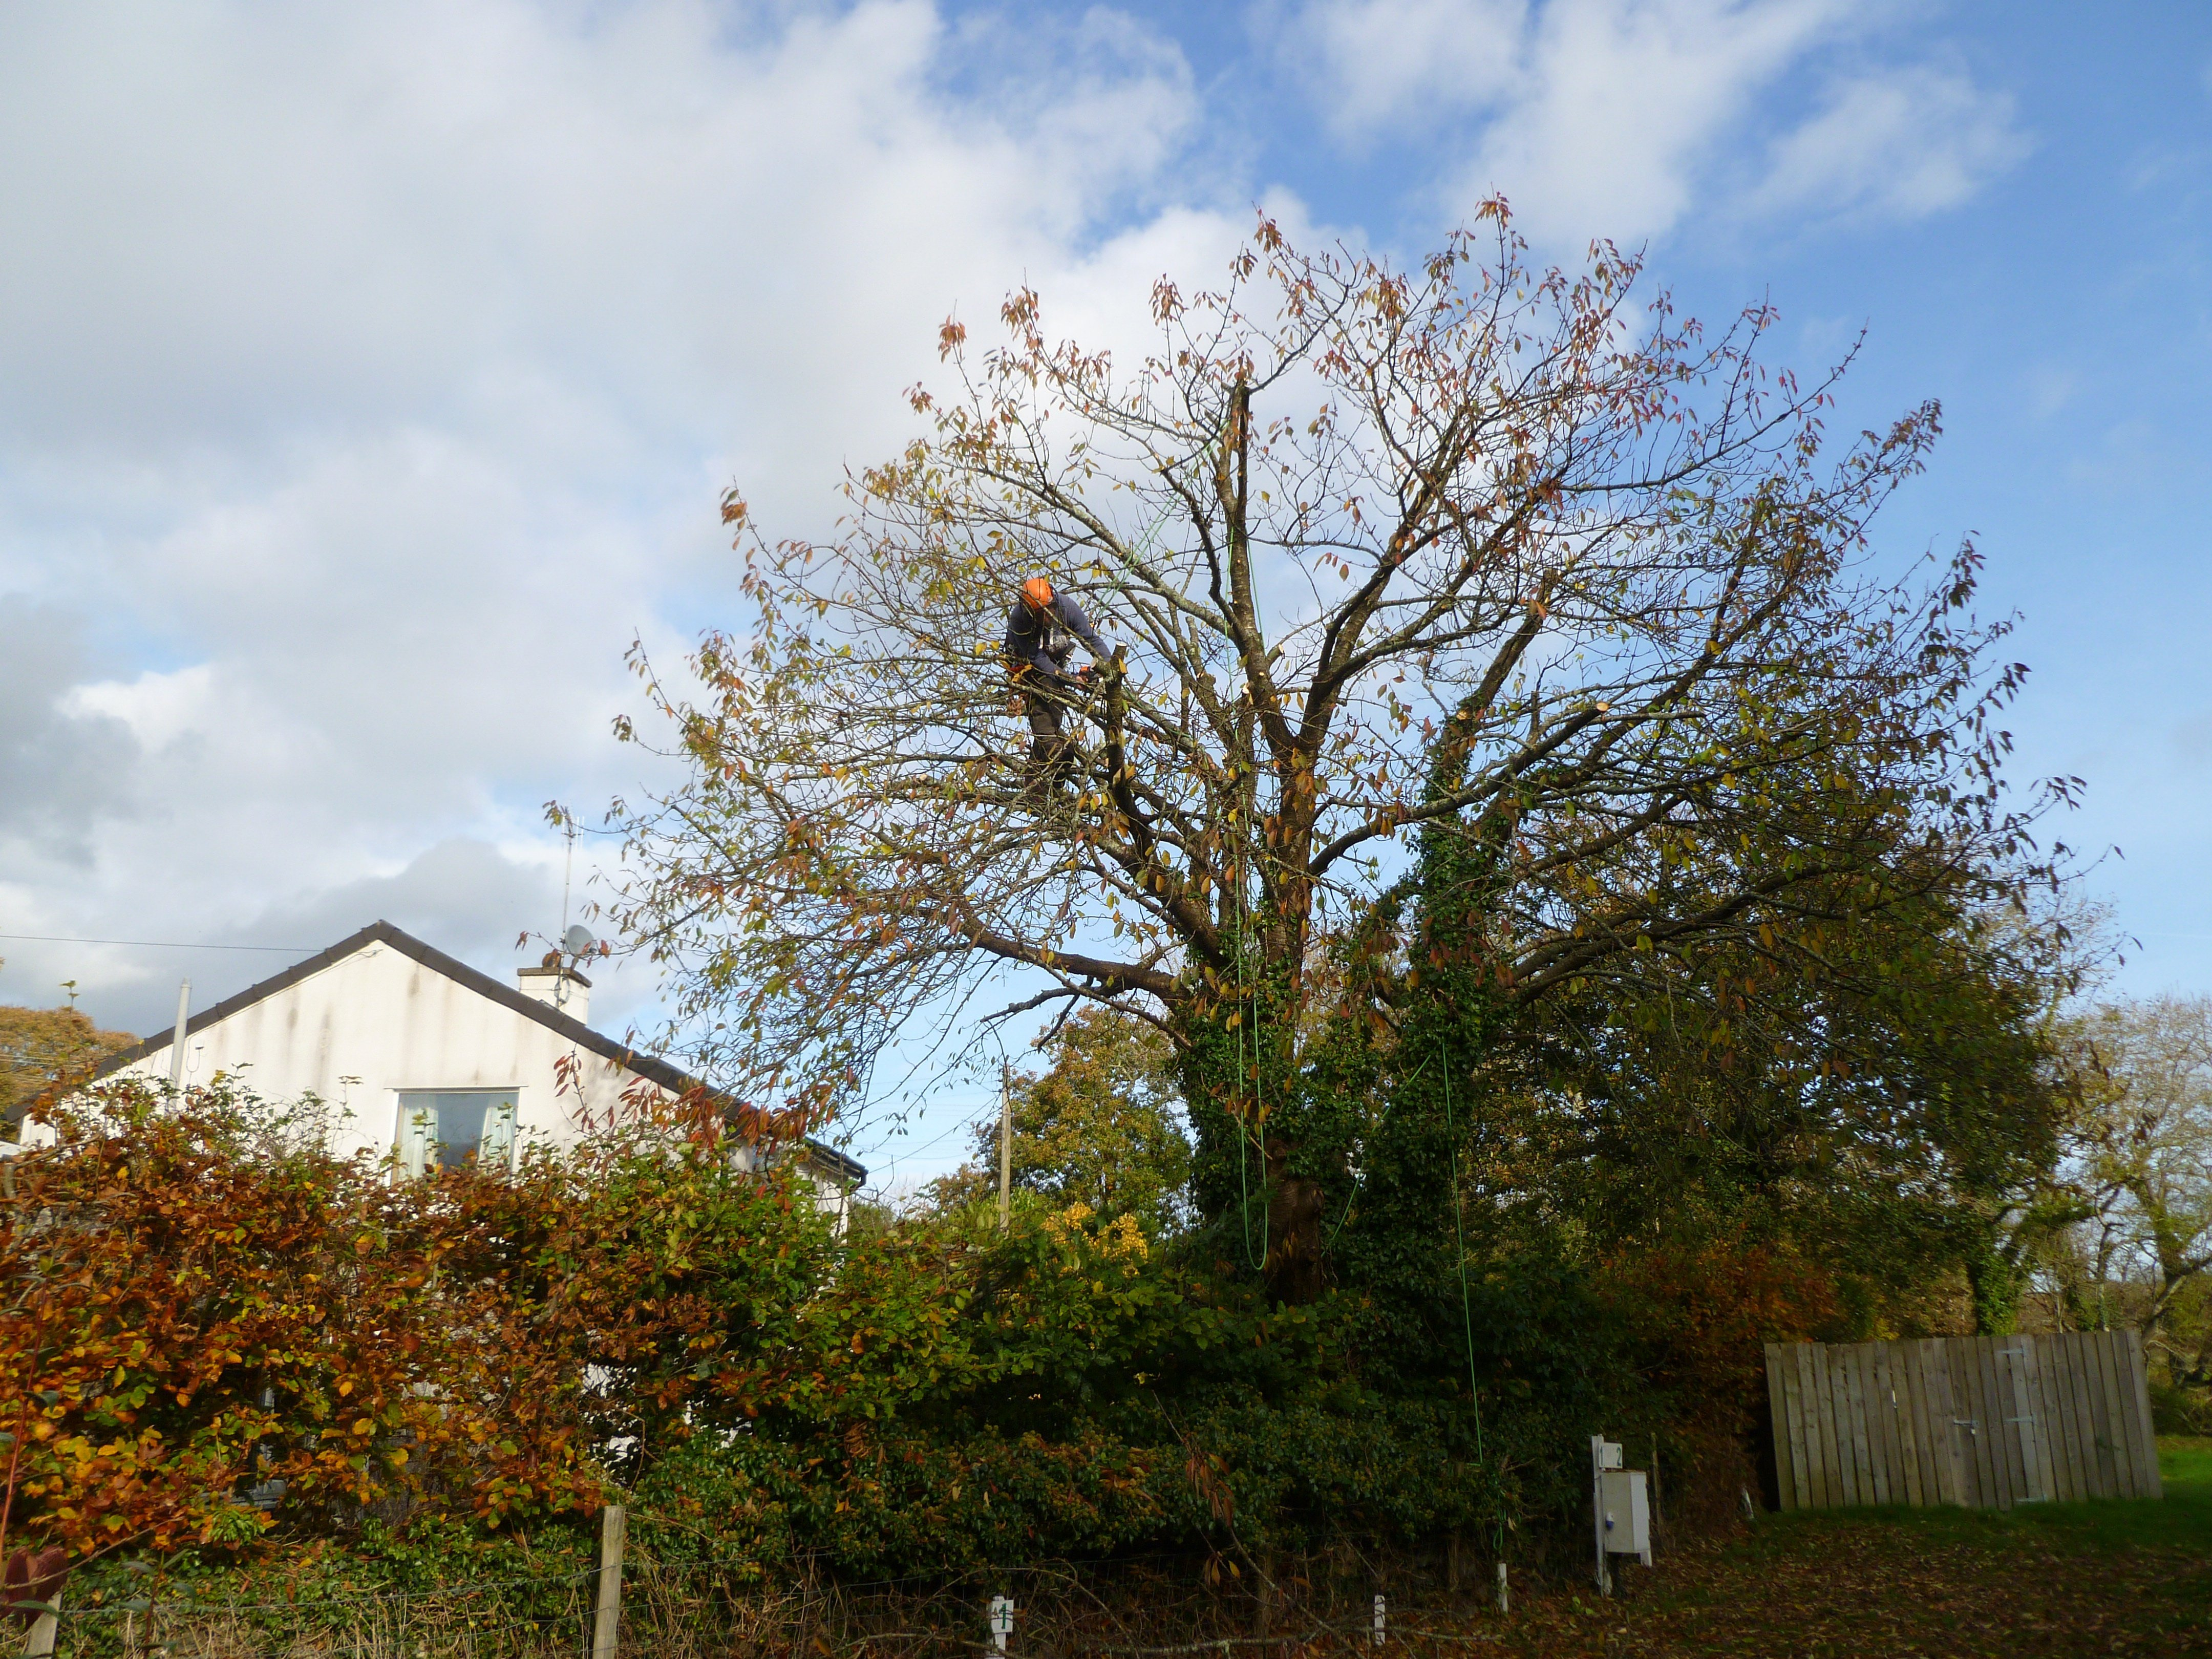 Cherry Tree crown reduction going well, nearly there now.